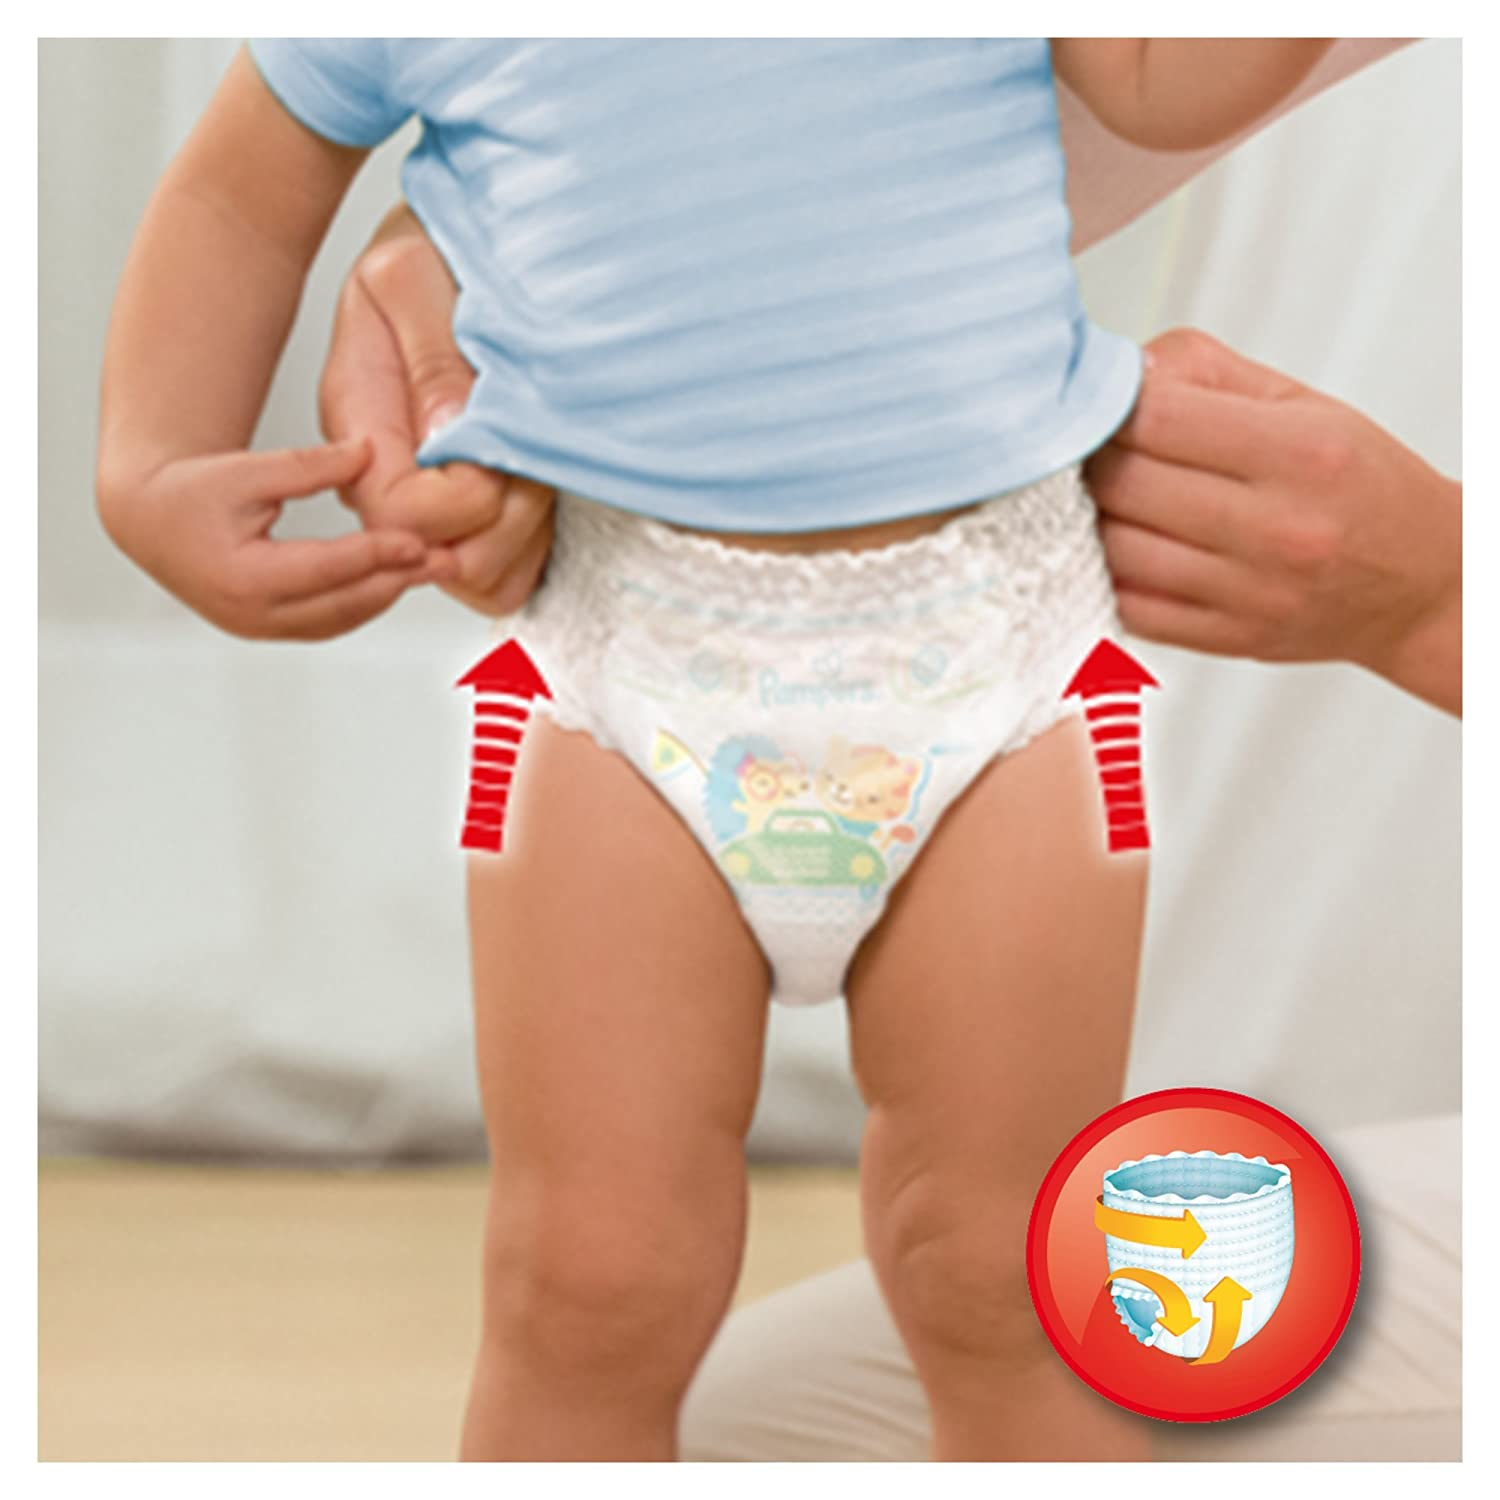 Dodot Pants - Pack de 32 pañales, talla 6, 16+kg: Amazon.es: Amazon Pantry